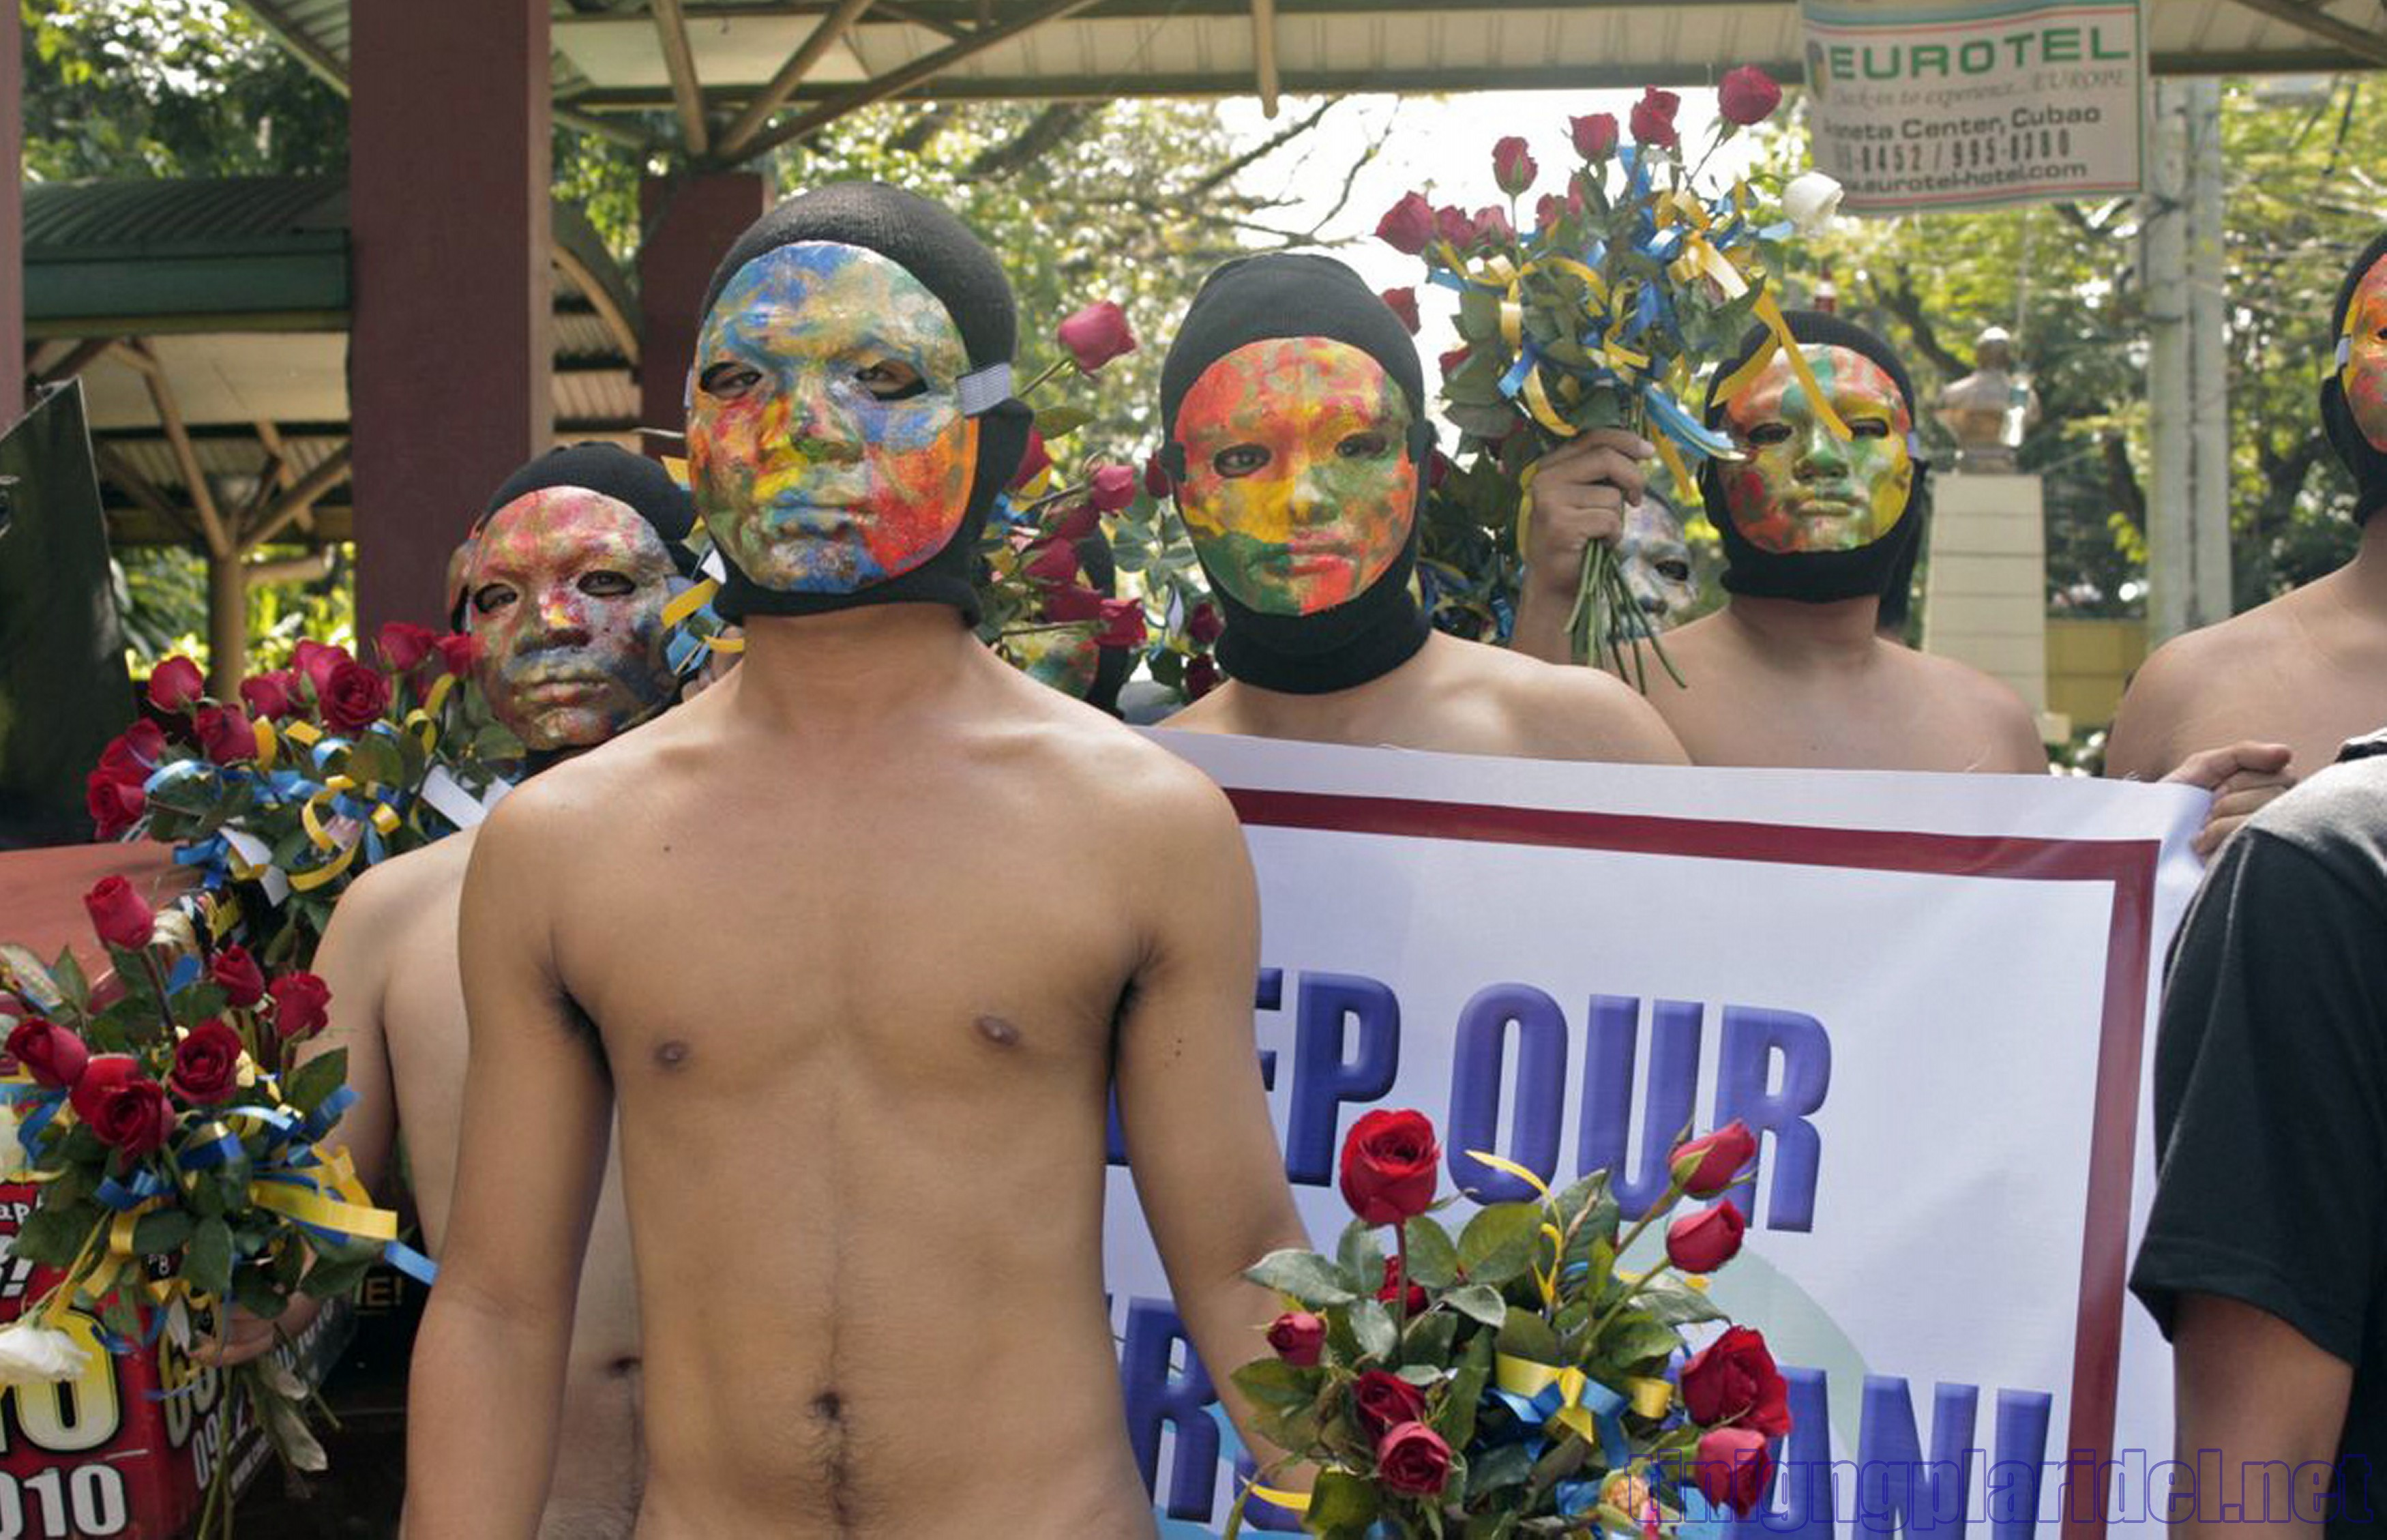 Oblation run 2011 up diliman dec 16 - 1 7